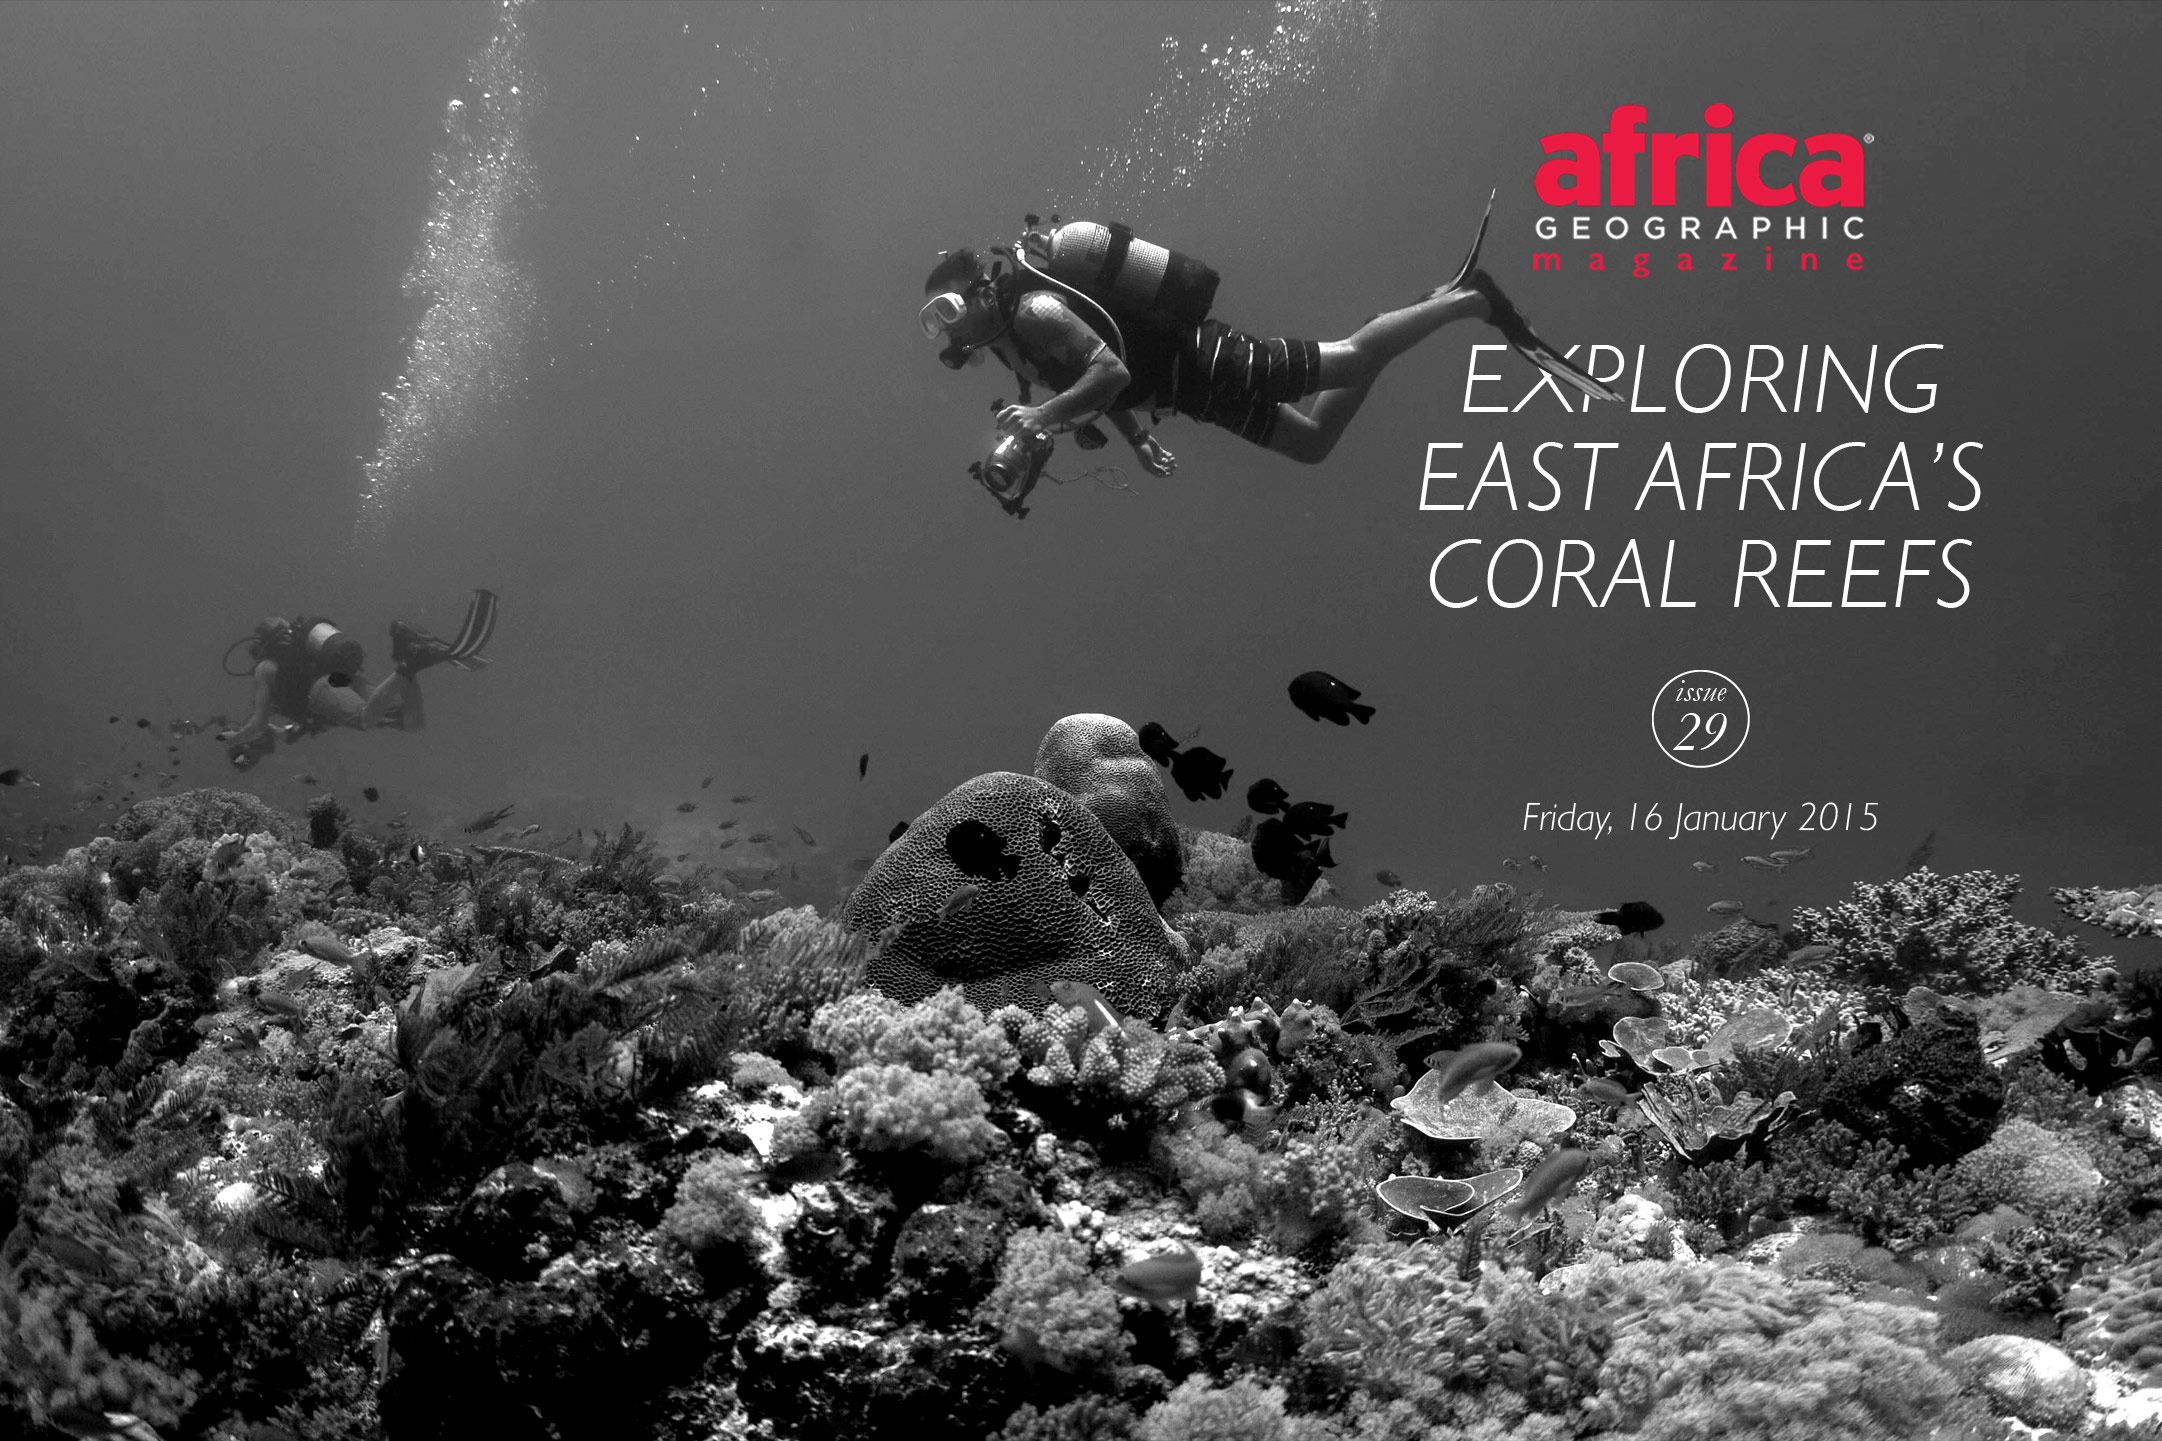 Africa's-coral-reef-diving-cover